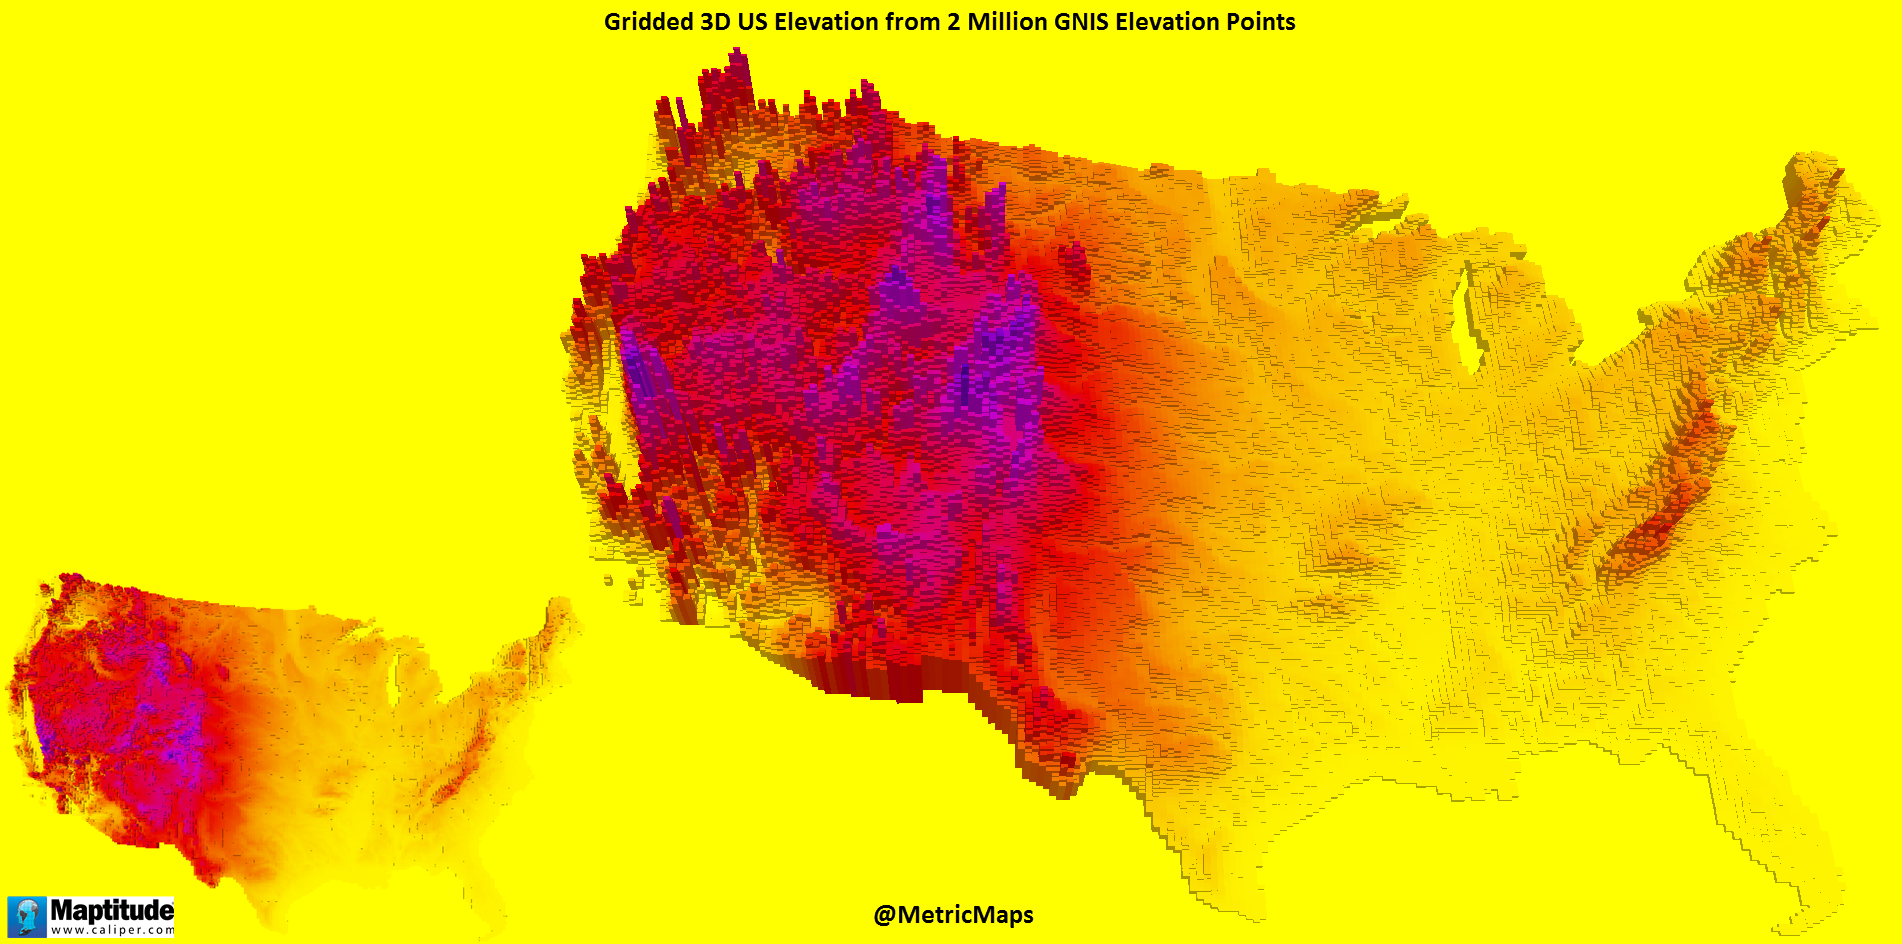 D Unites States Elevation United States Pinterest D D And - Us states by elevation